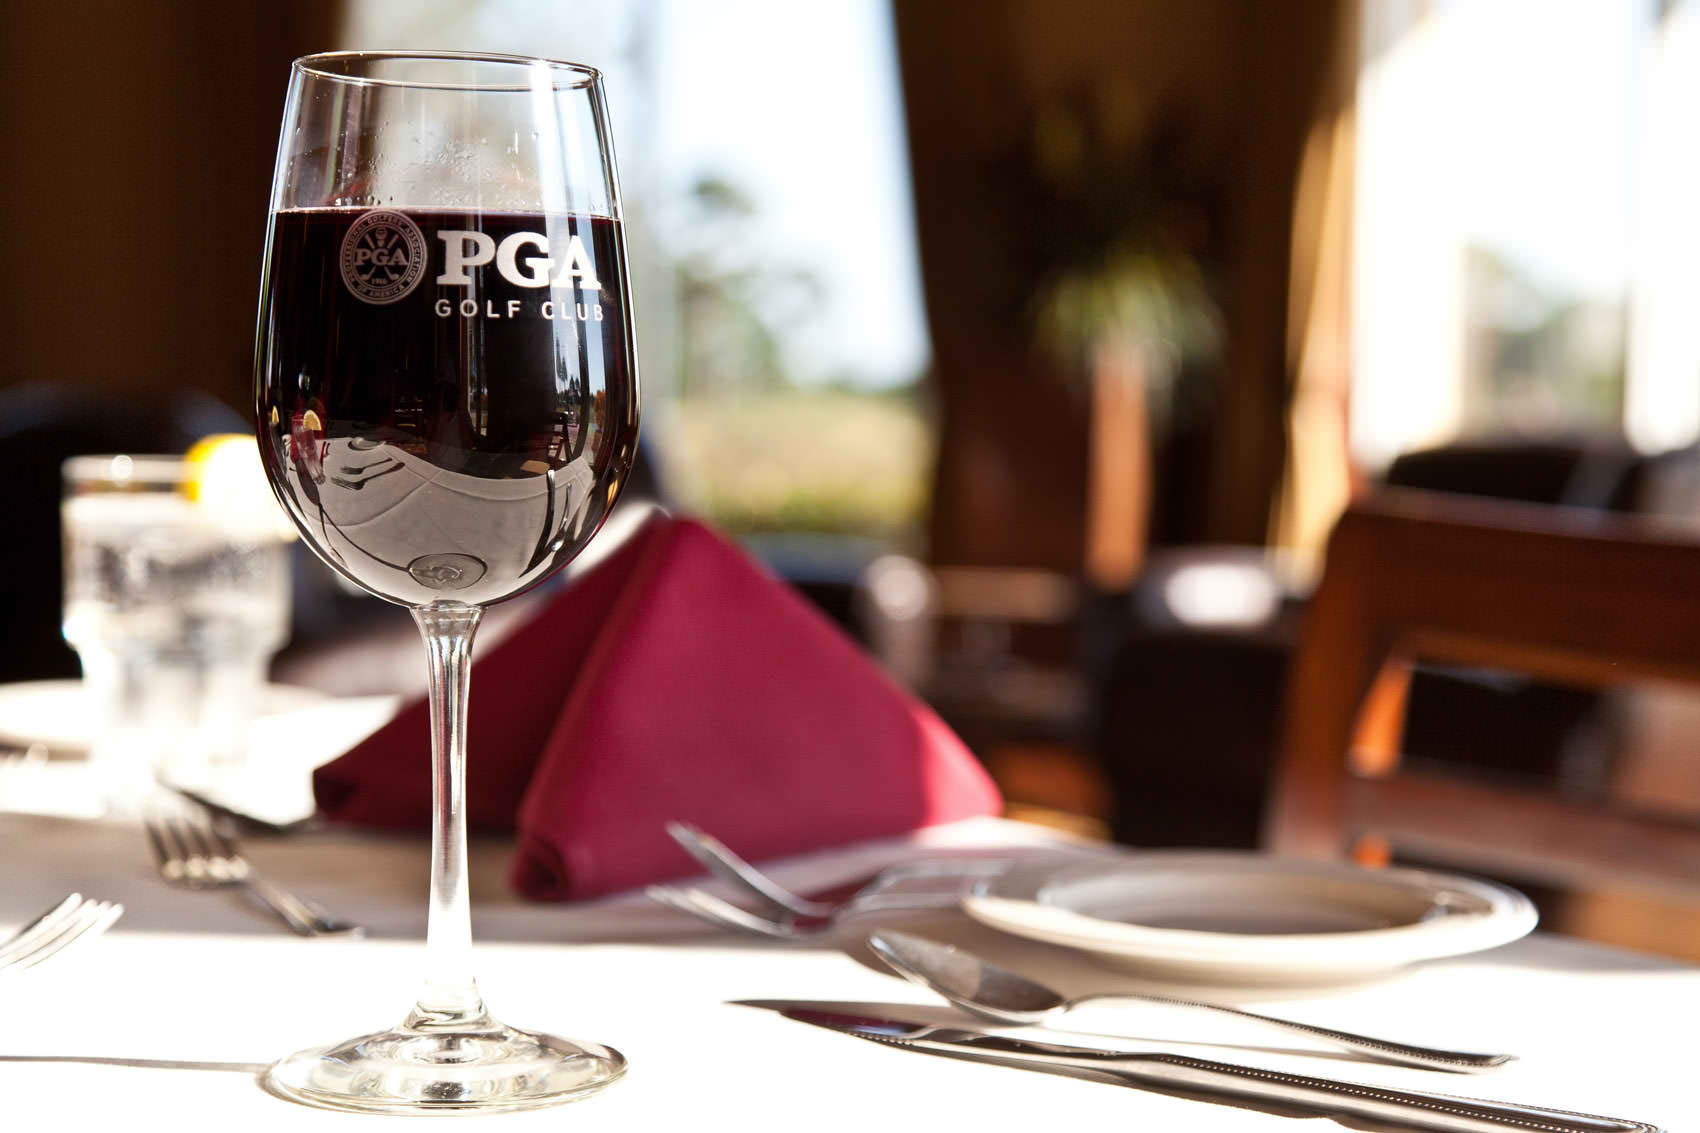 pgavillagerestaurant - pga village